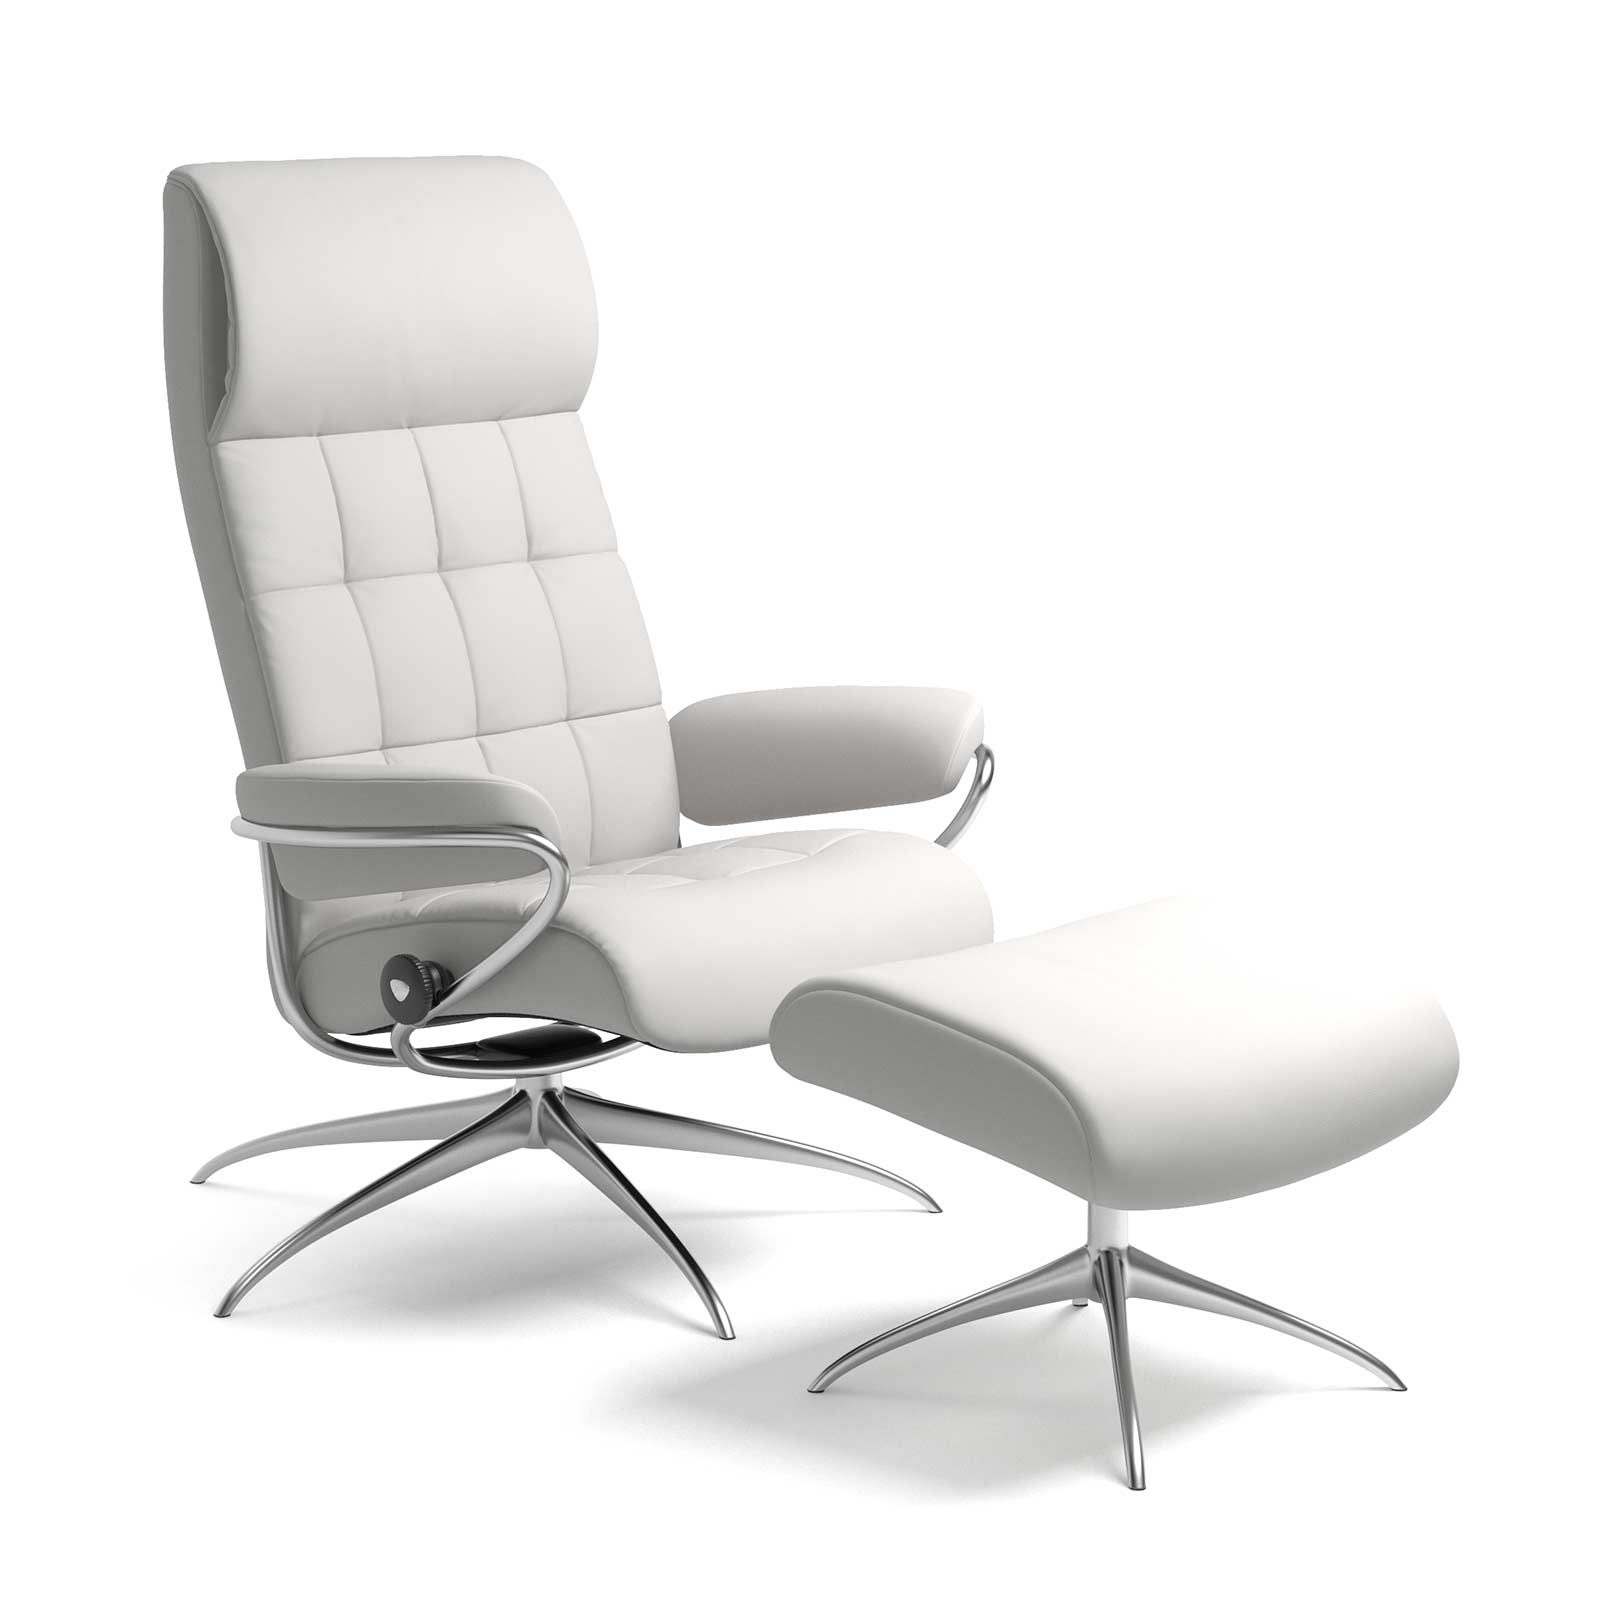 Stressless London Sessel mit hoher Lehne Lederfarbe snow